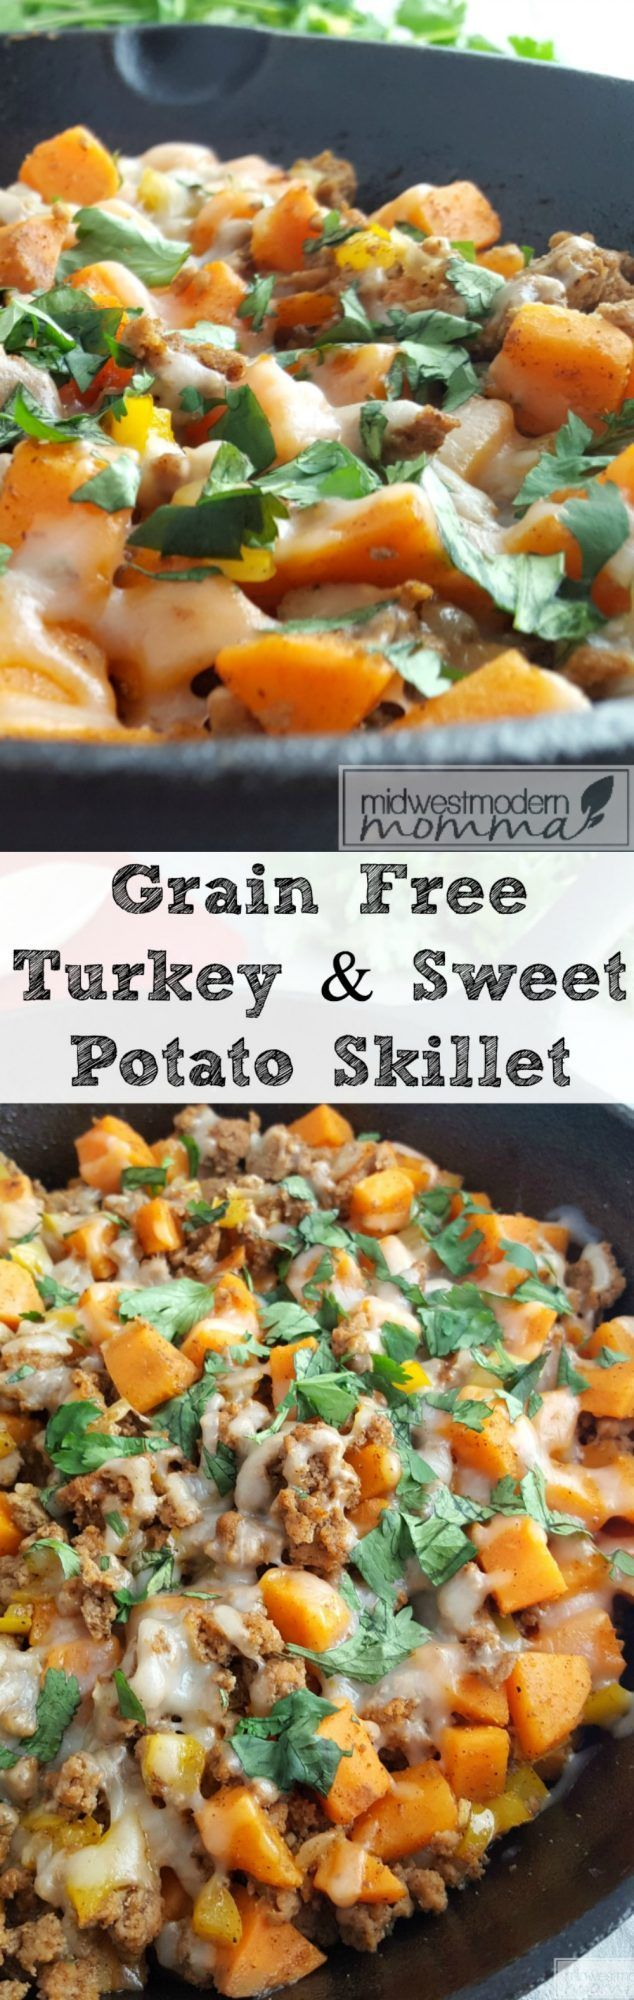 Eating healthy has never looked better than this delicious Paleo Ground Turkey Sweet Potato Hash recipe! Done in 30 minutes, this grain-free Taco Turkey & Sweet Potato Skillet will be a hit for everyone in your family to enjoy!